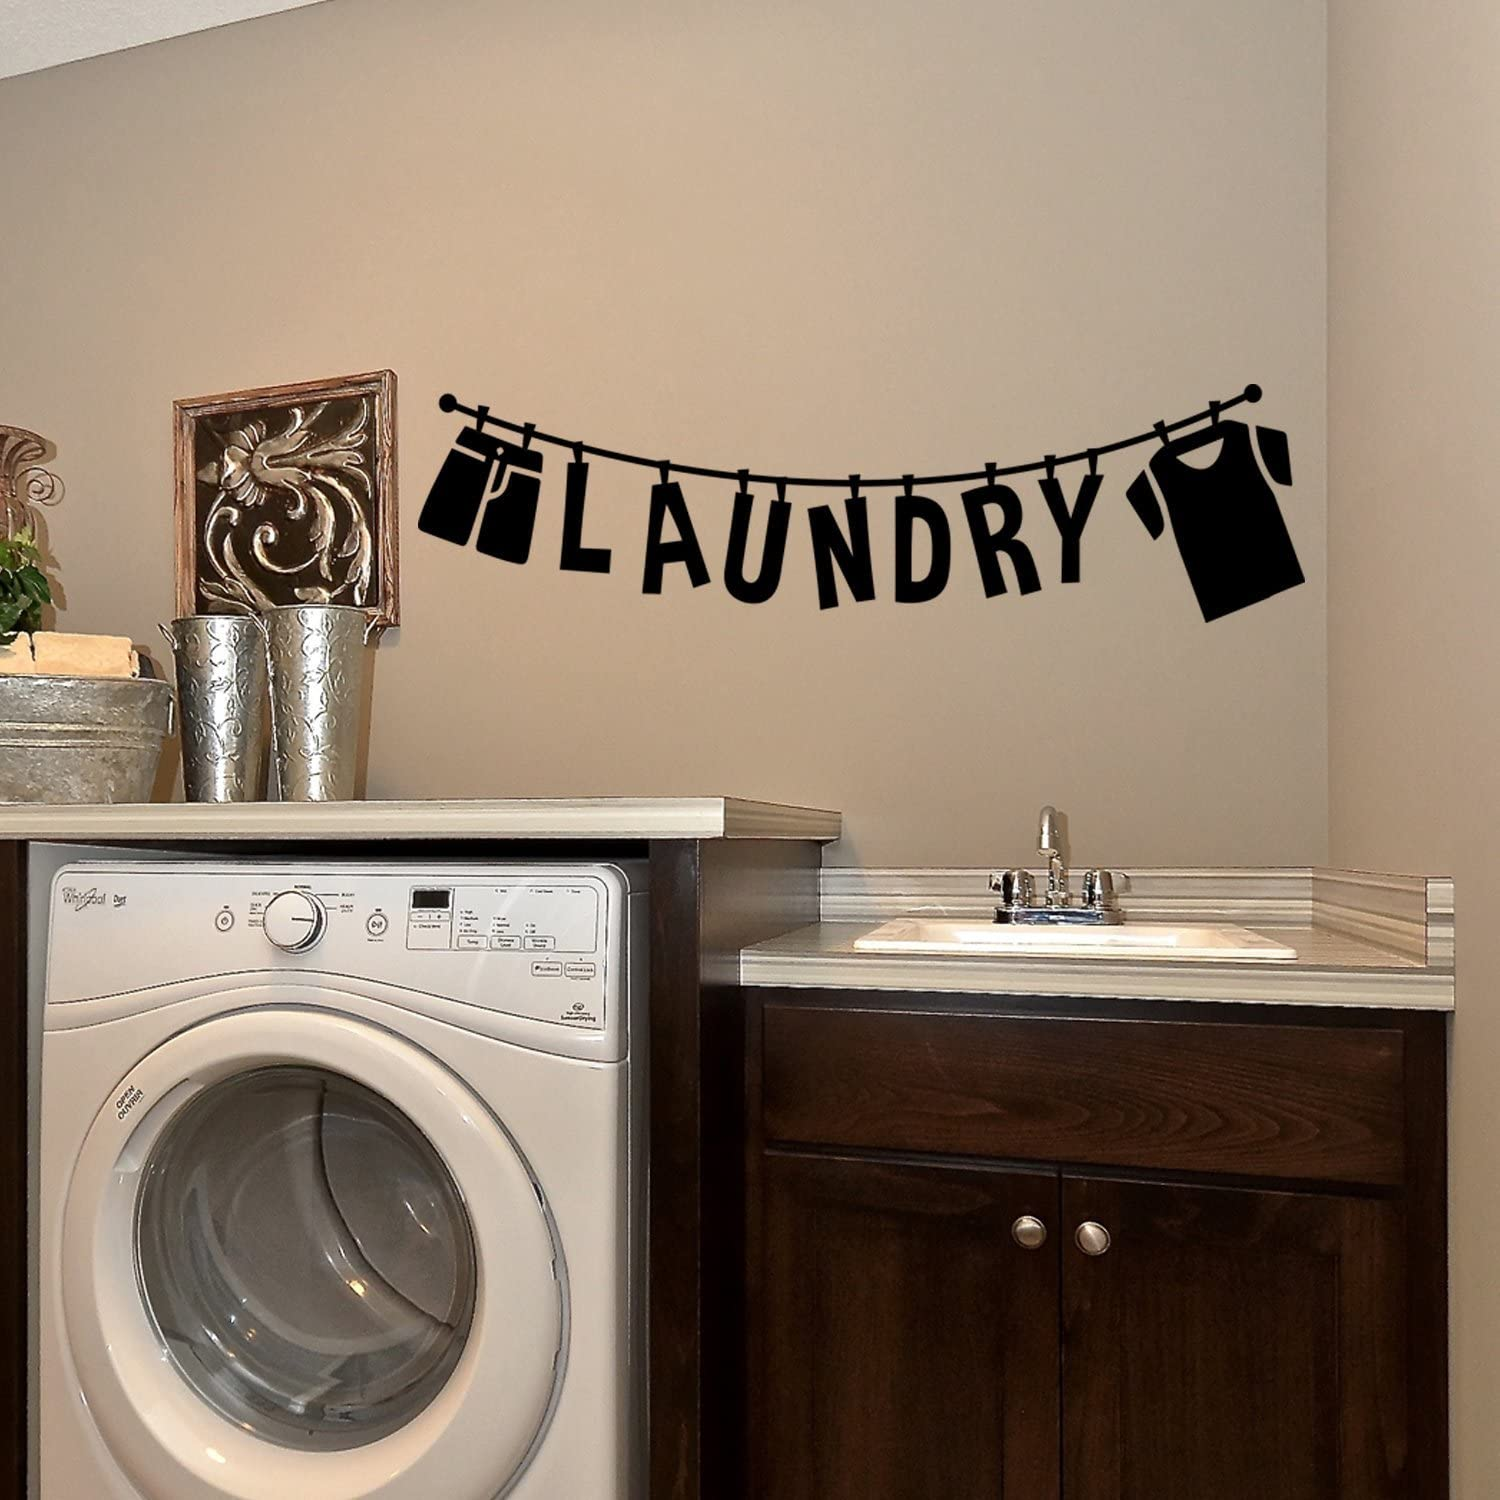 "Laundry Lettering Sign - 10"" x 37"" - Laundry Room Vinyl Decal - Funny Quotes Wall Decor Sticker - Waterproof Vinyl Stickers (10"" x 37"", Black)"